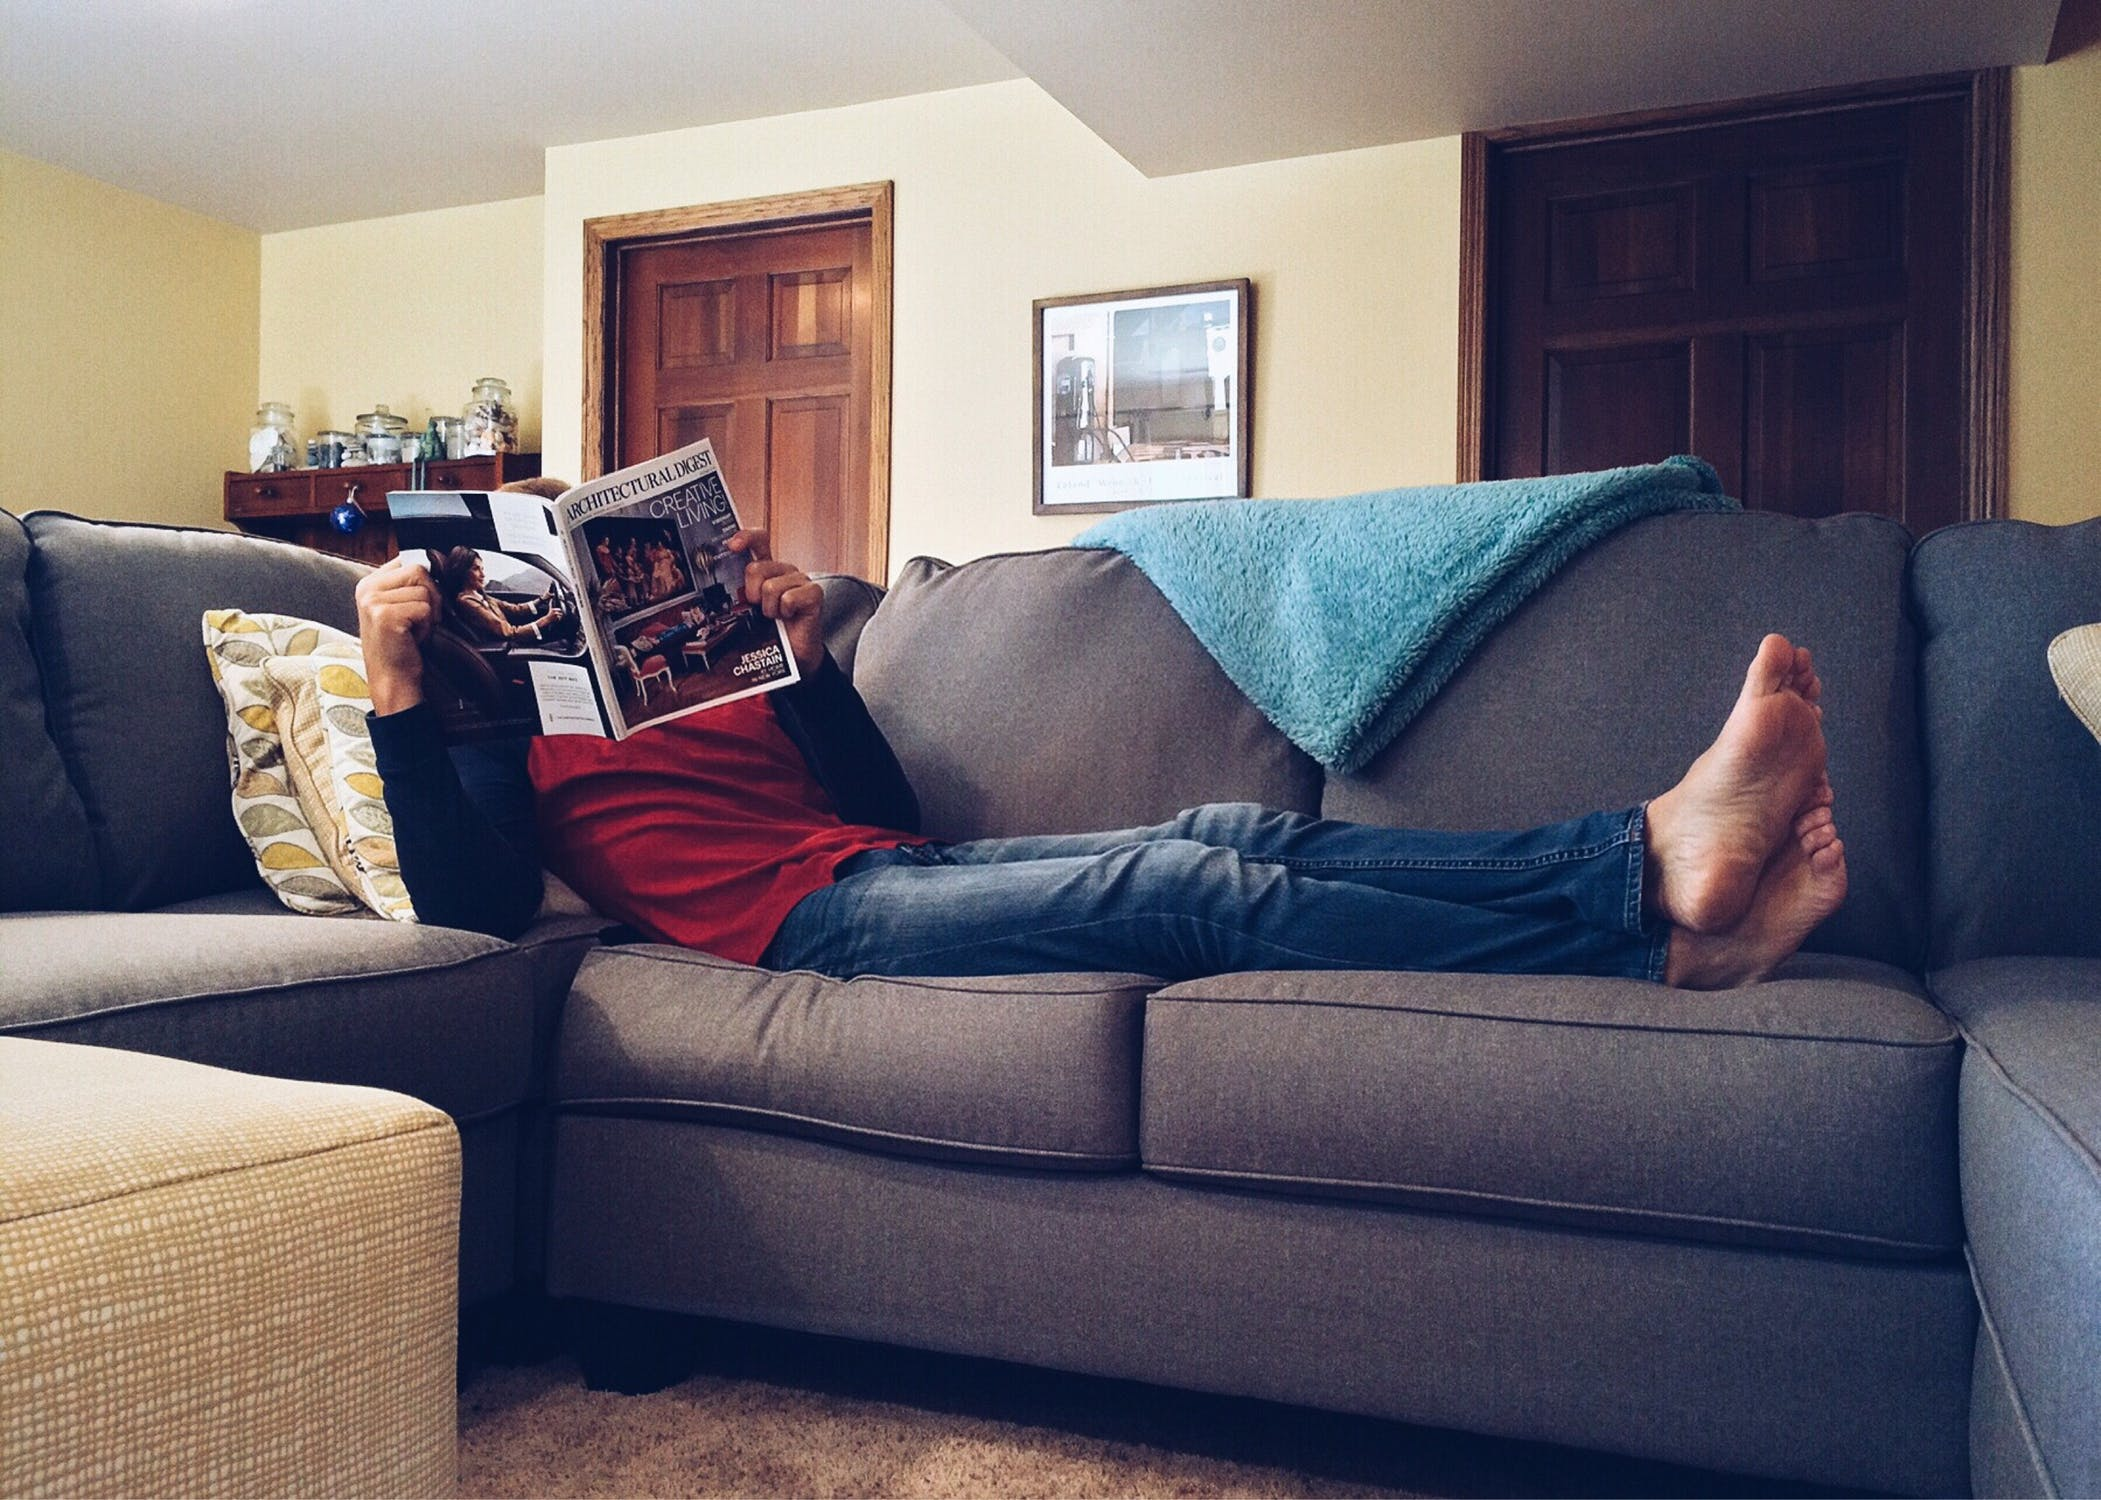 A person laying on a sofa in a living room